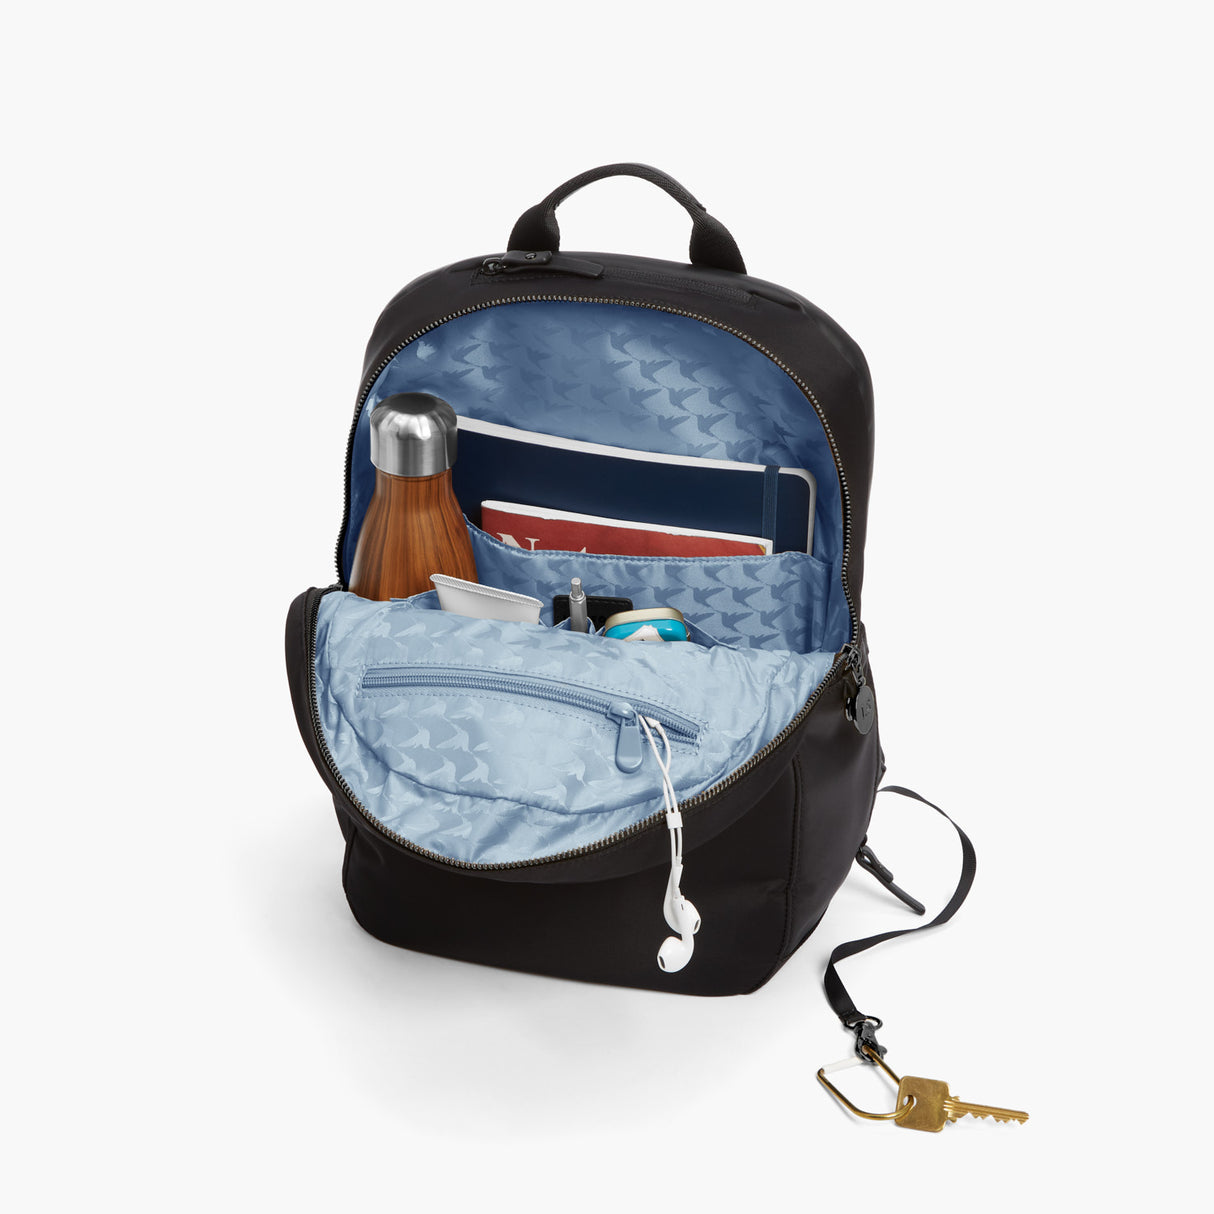 All The Details - Beacon - Nylon - Black / Gunmetal / Azure - Backpack - Lo & Sons